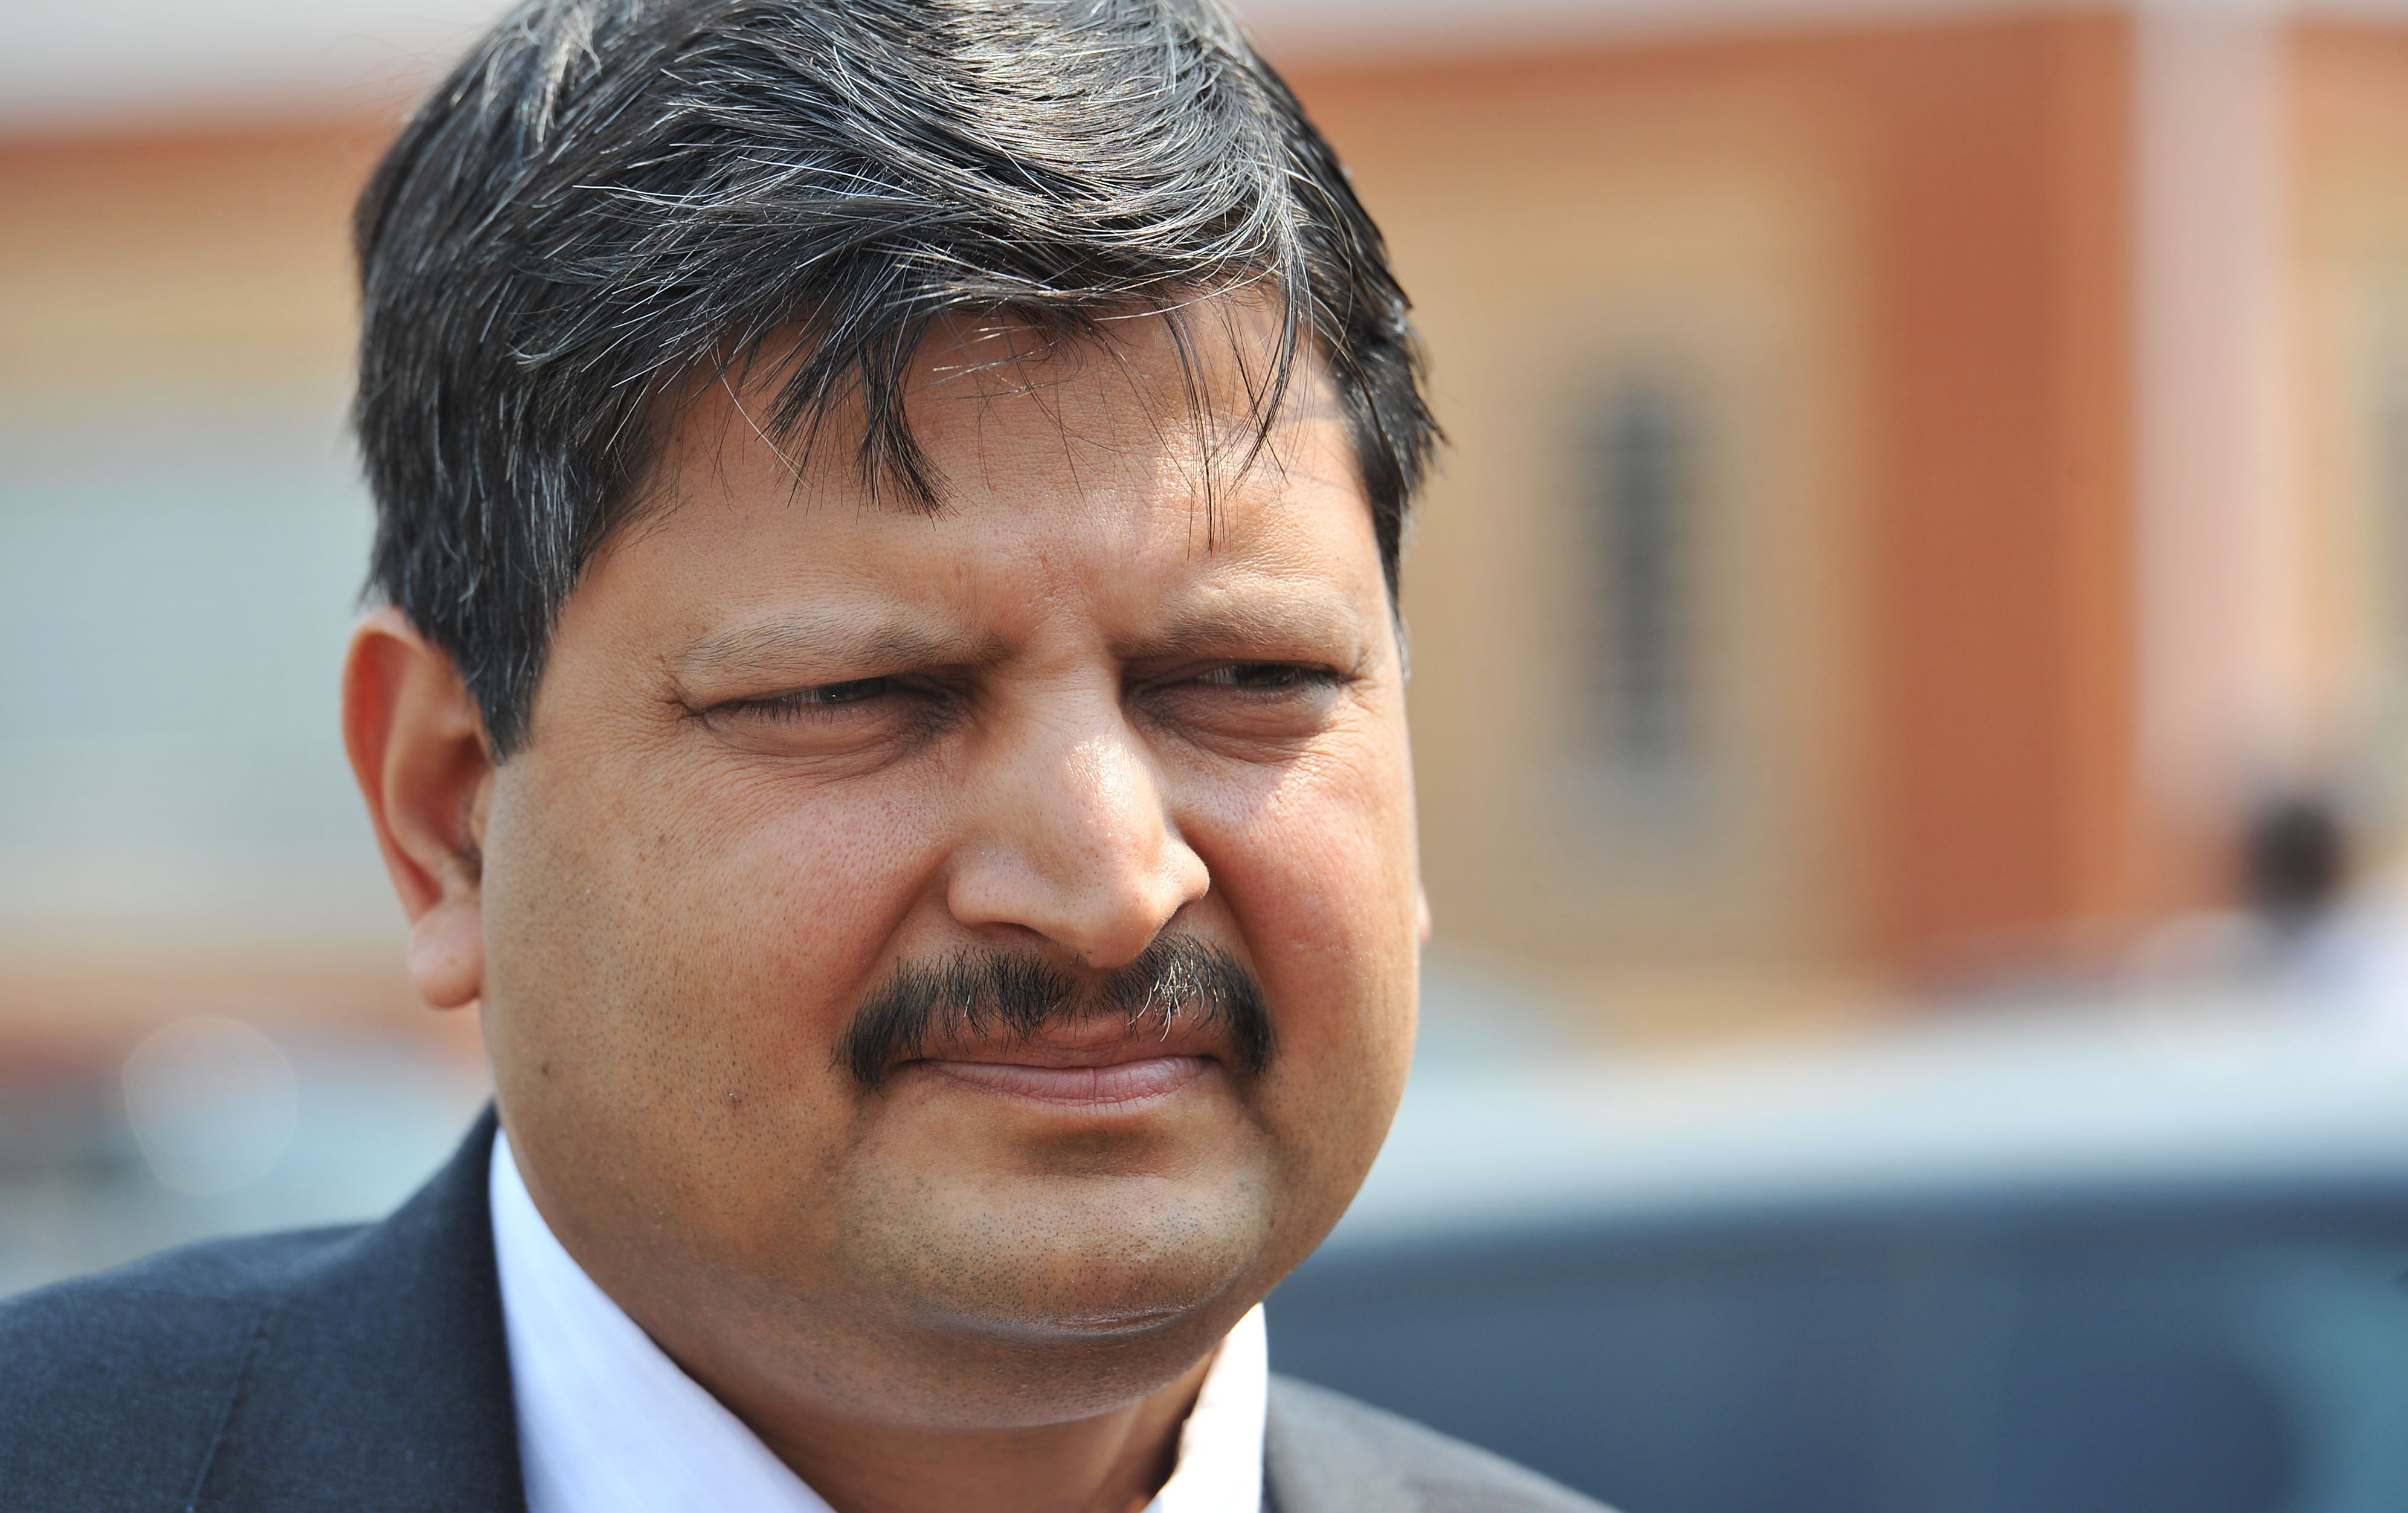 In this photo taken in September 2010 Atul Gupta is seen outside magistrates courts in Johannesburg. The wealthy Gupta family has been criticized or allegedly improper links to president Jacob Zuma. The Gupta family denies that it is corrupt but does not directly address accusations that it tried to boost business by influencing some of Zuma's choices for Cabinet posts, even allegedly offering the finance minister's job to an official.